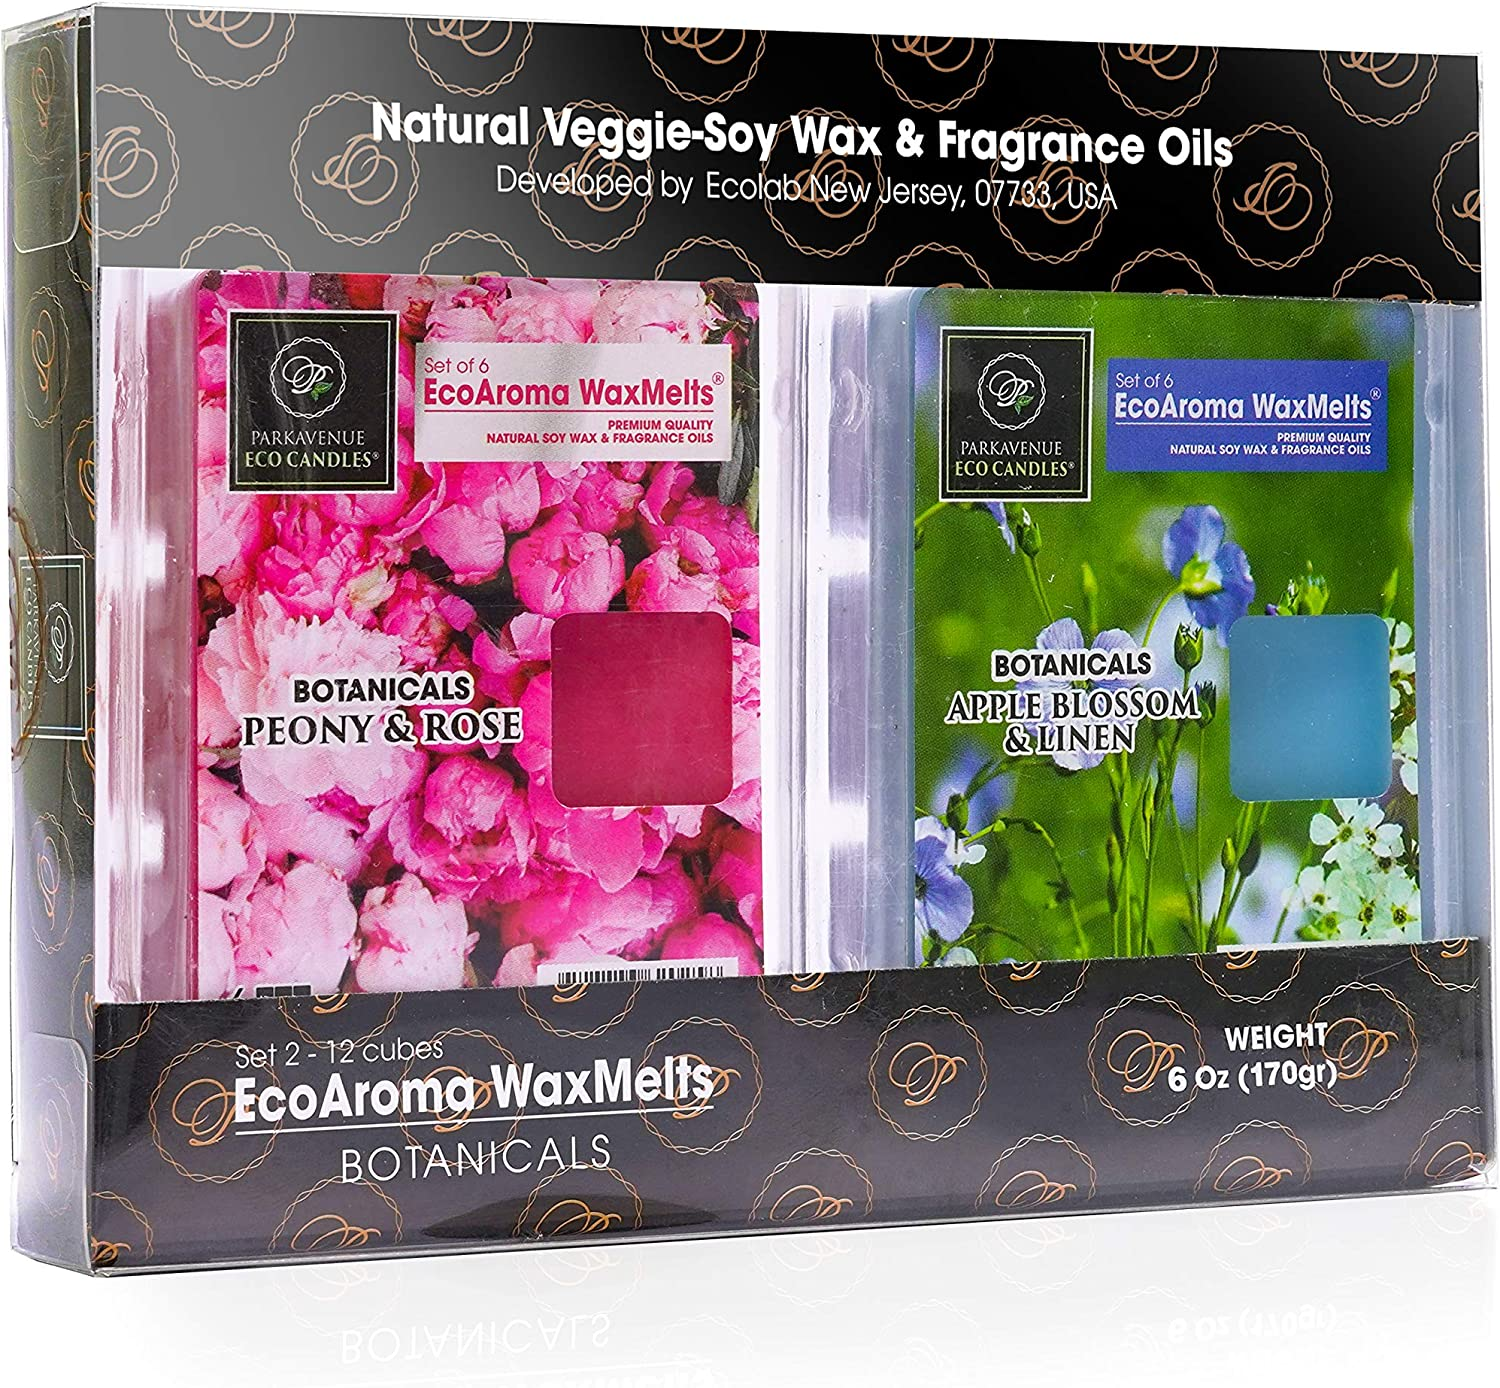 EcoAroma Coco-Soy Candles, Fresh Linen Apple Blossom,Peony Rose,Set of 2x6 Cubes (3 Oz Each), Scented Wax Melts Wax Cubes for Better Homes Gardens-Coconut Soy Wax Melts with Natural Essential Oils